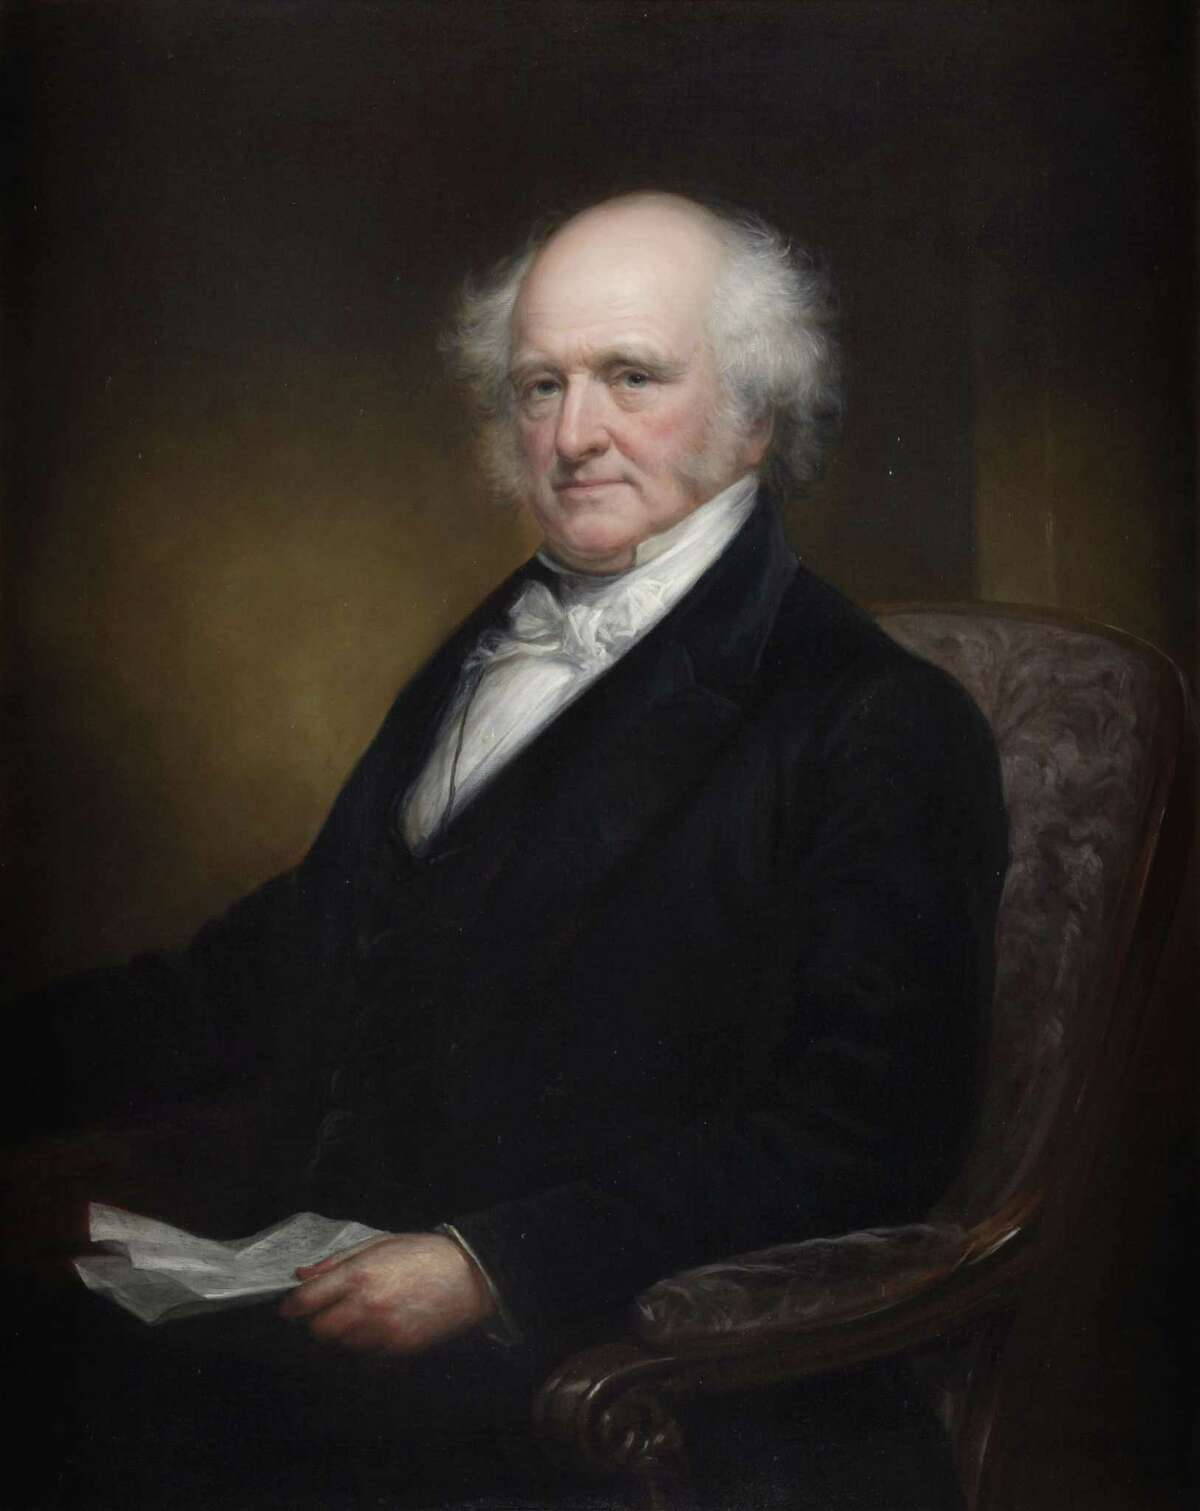 Before being elected the eighth president of the United States in 1836, Kinderhook native Martin Van Buren spent most of his life in New York politics.